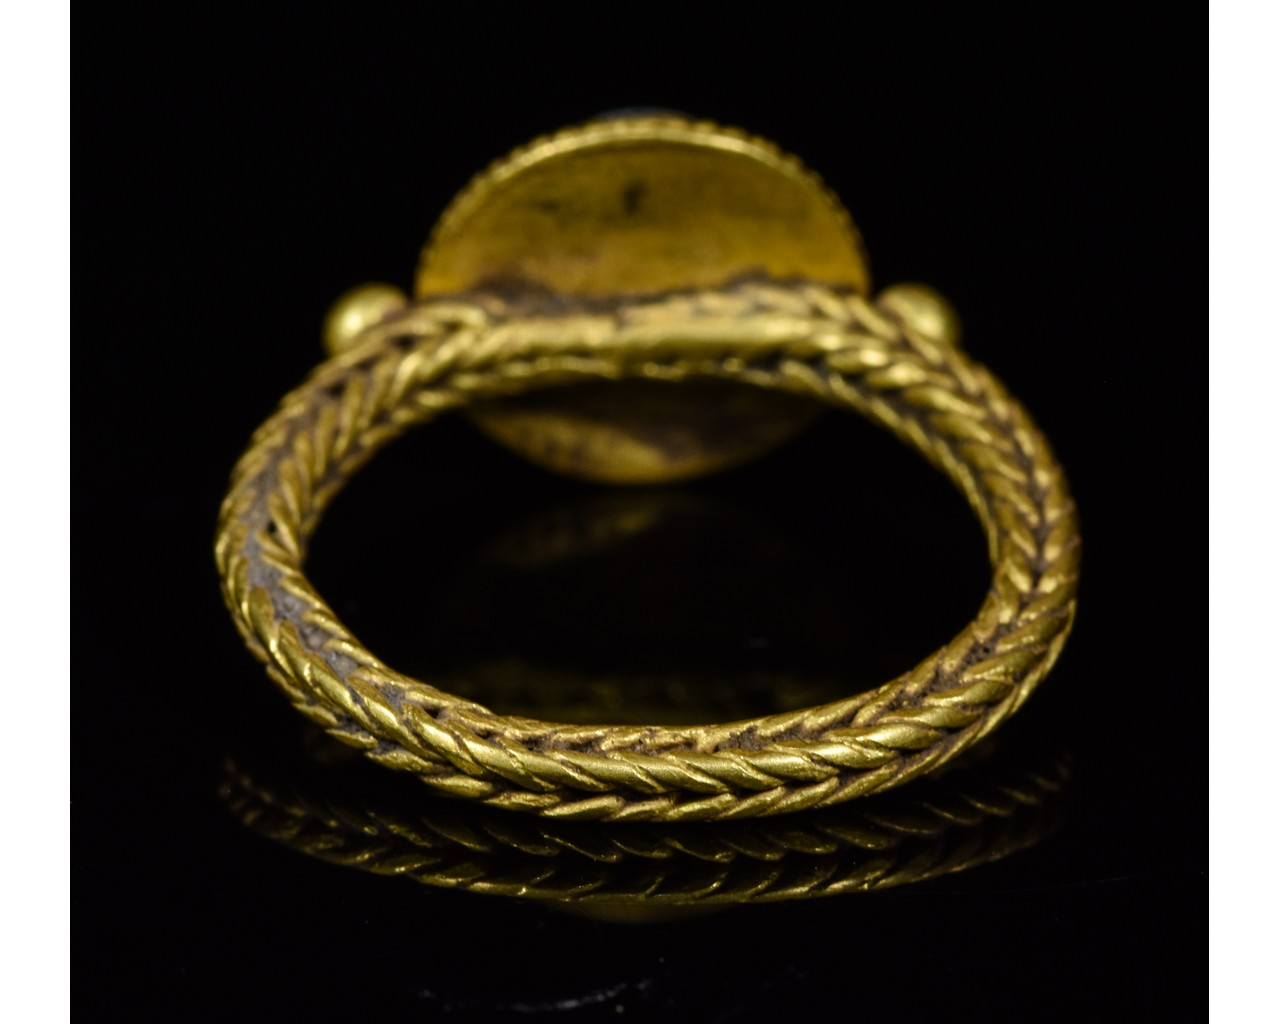 Lot 20 - MEDIEVAL GOLD RING WITH CABOCHON